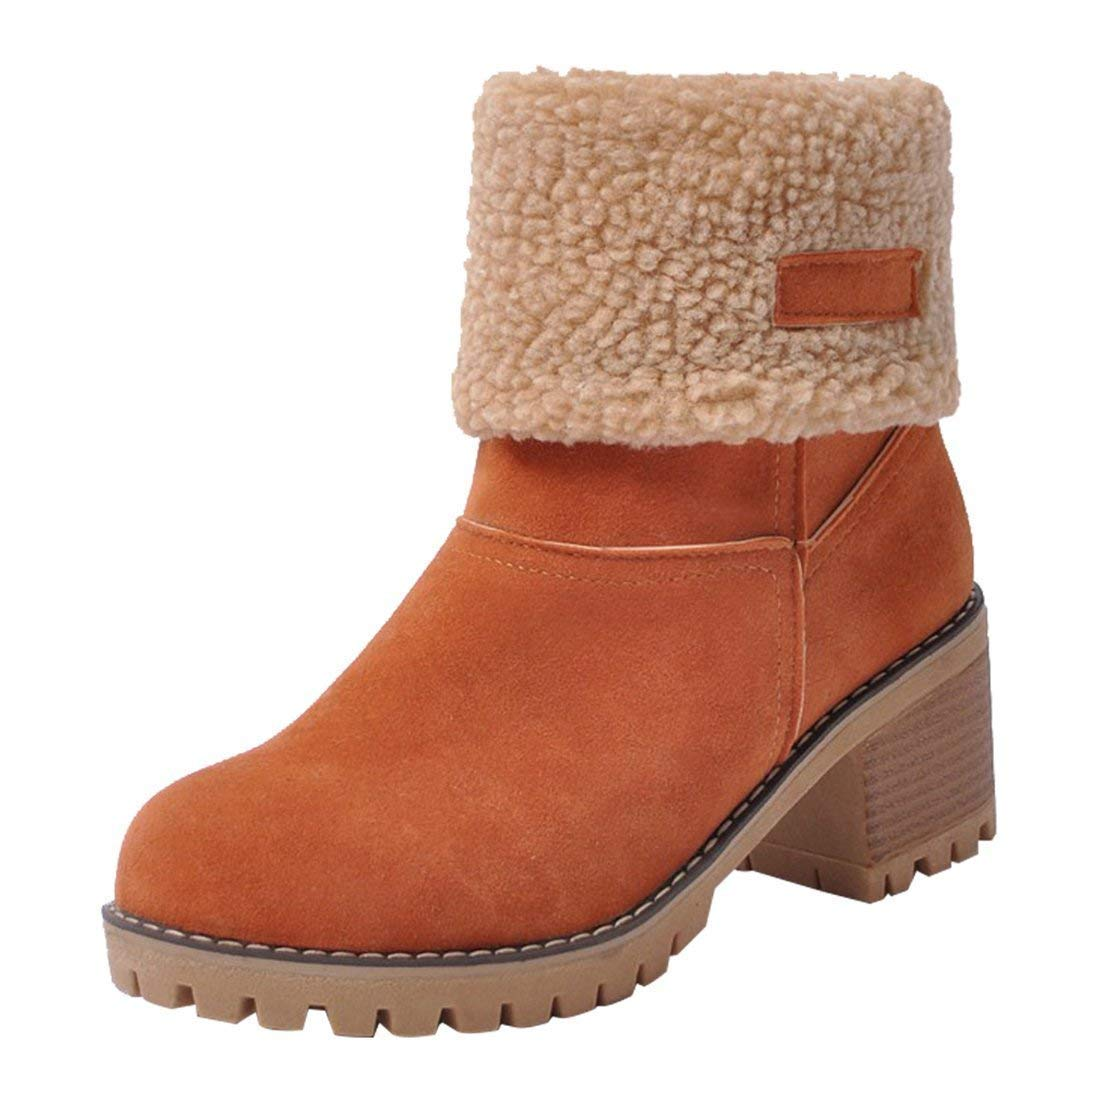 orange Susanny Womens Ankle Snow Boots Winter Warm Fur Booties Chunky Mid Heels Cute shoes